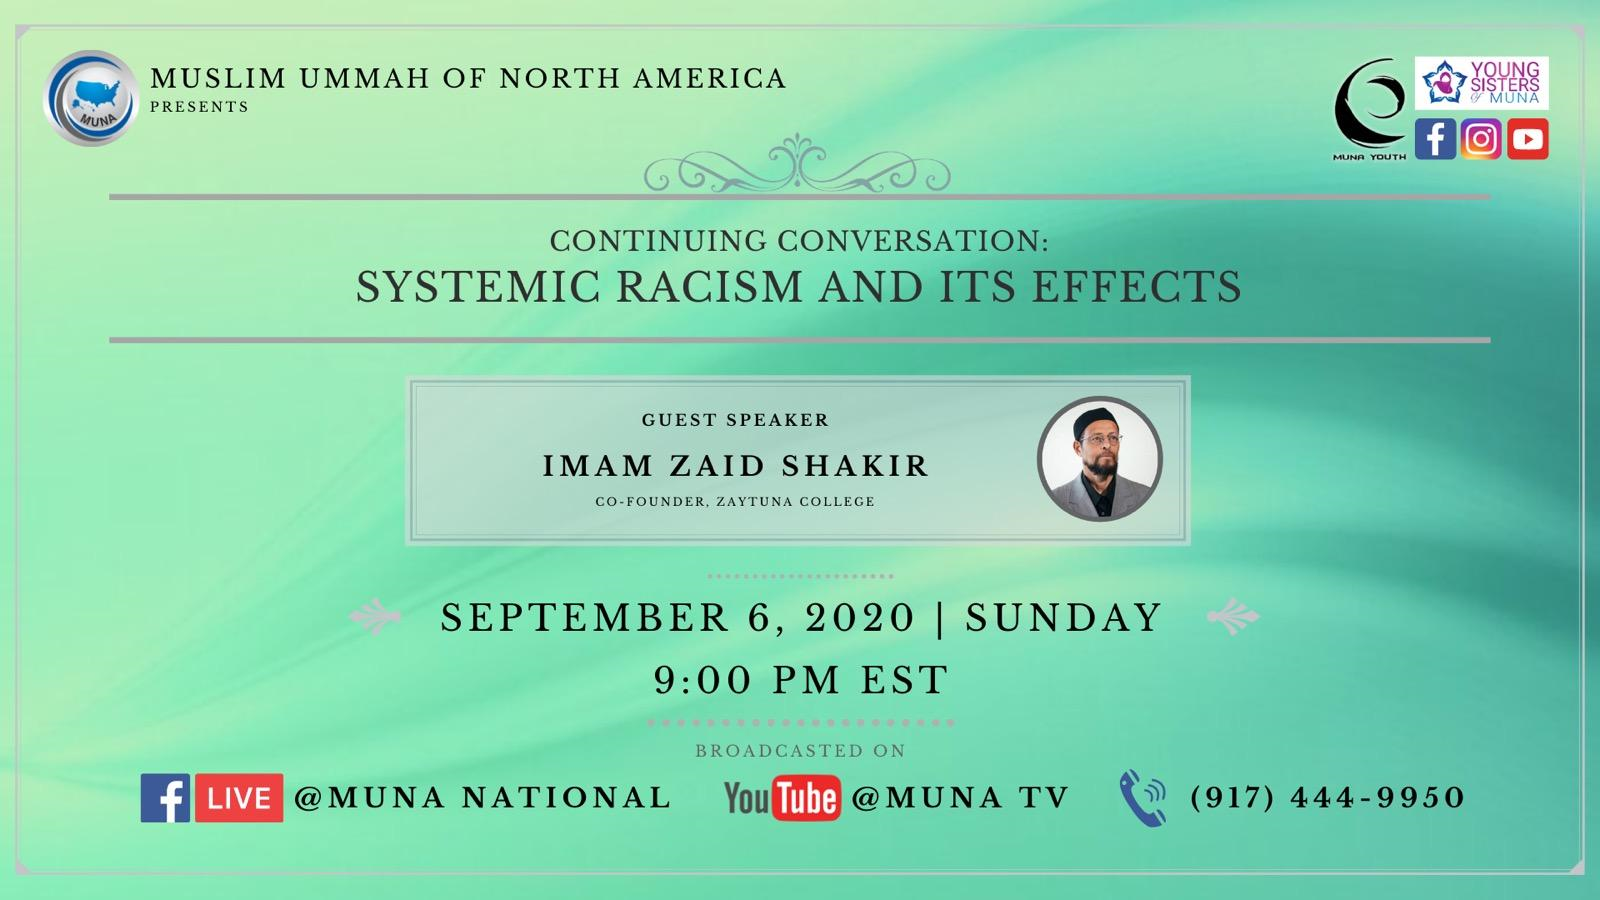 Topic – Continuing Conversation: Systemic Racism and Its Effects